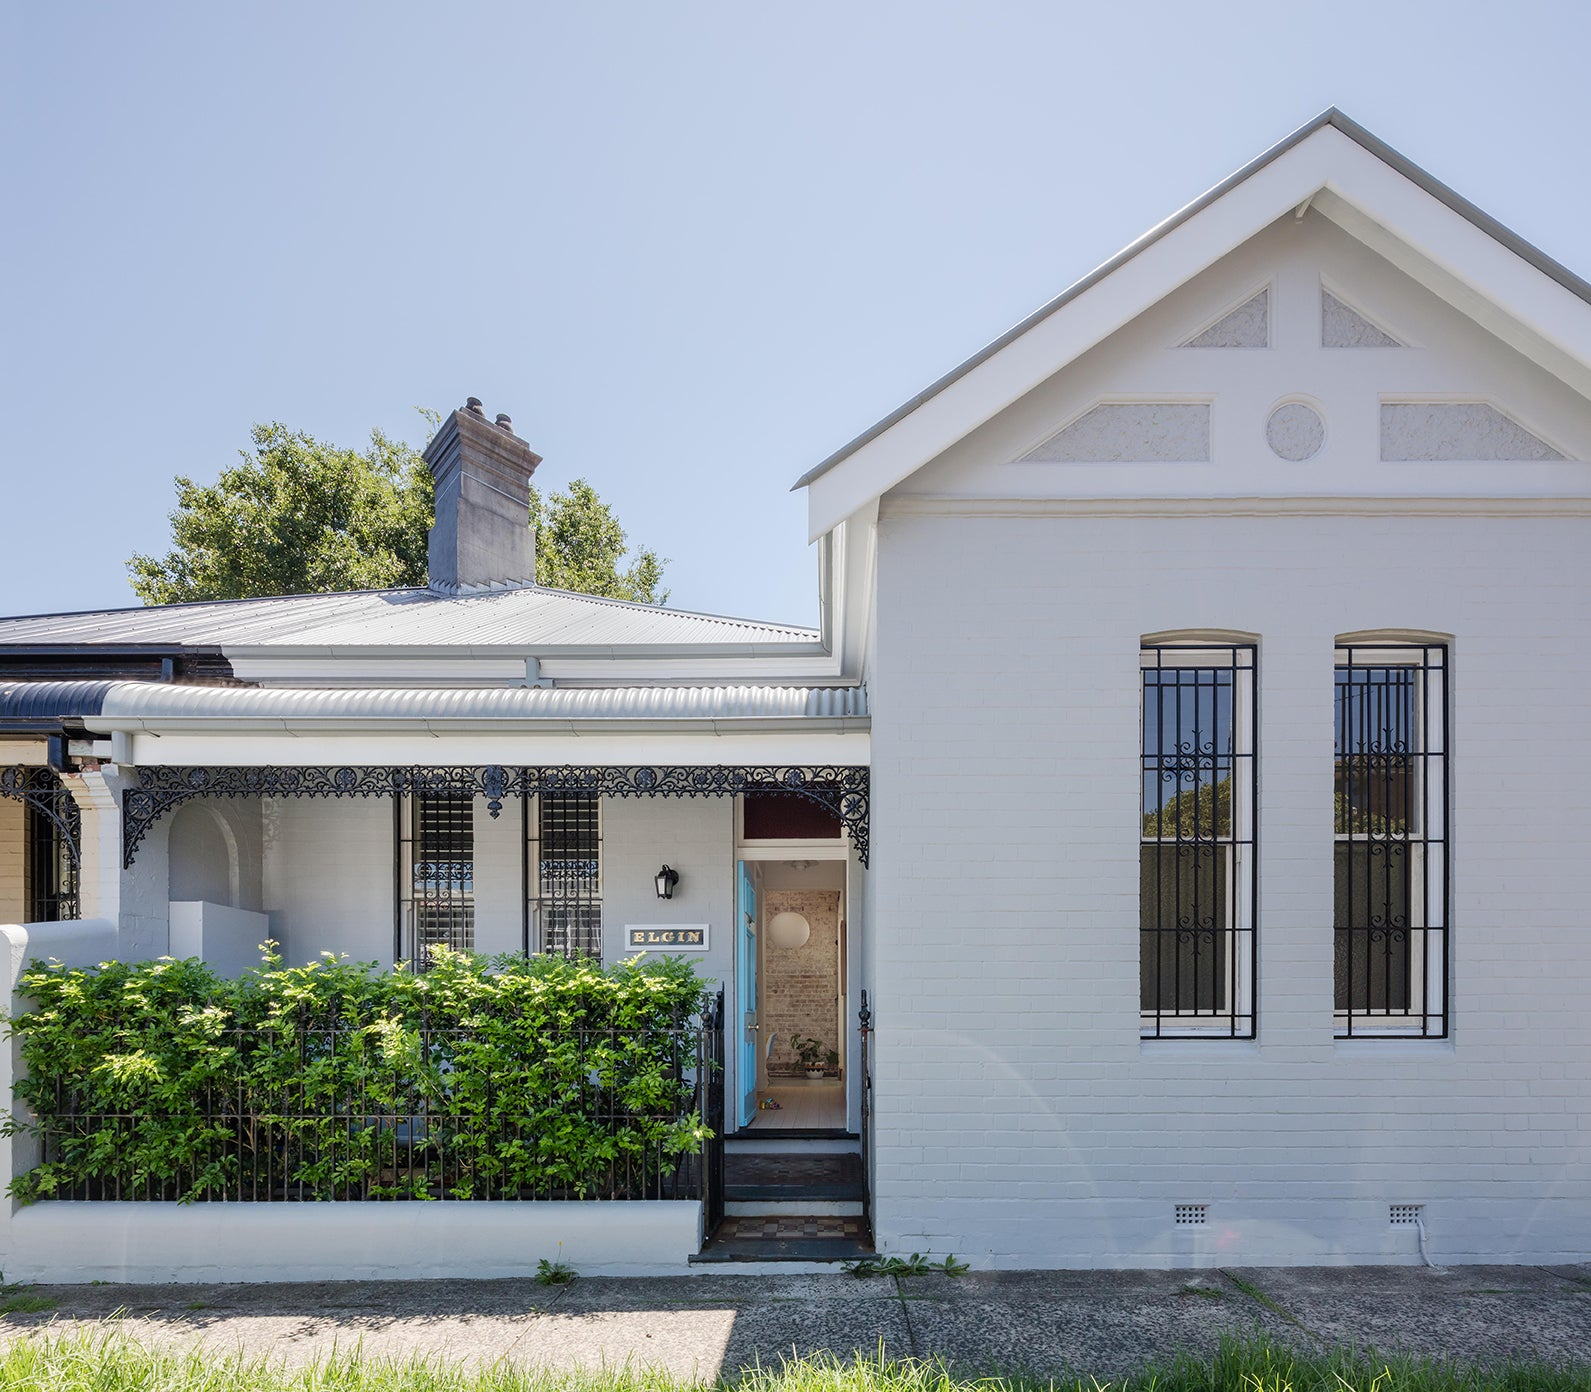 exterior shot of a small white cottage